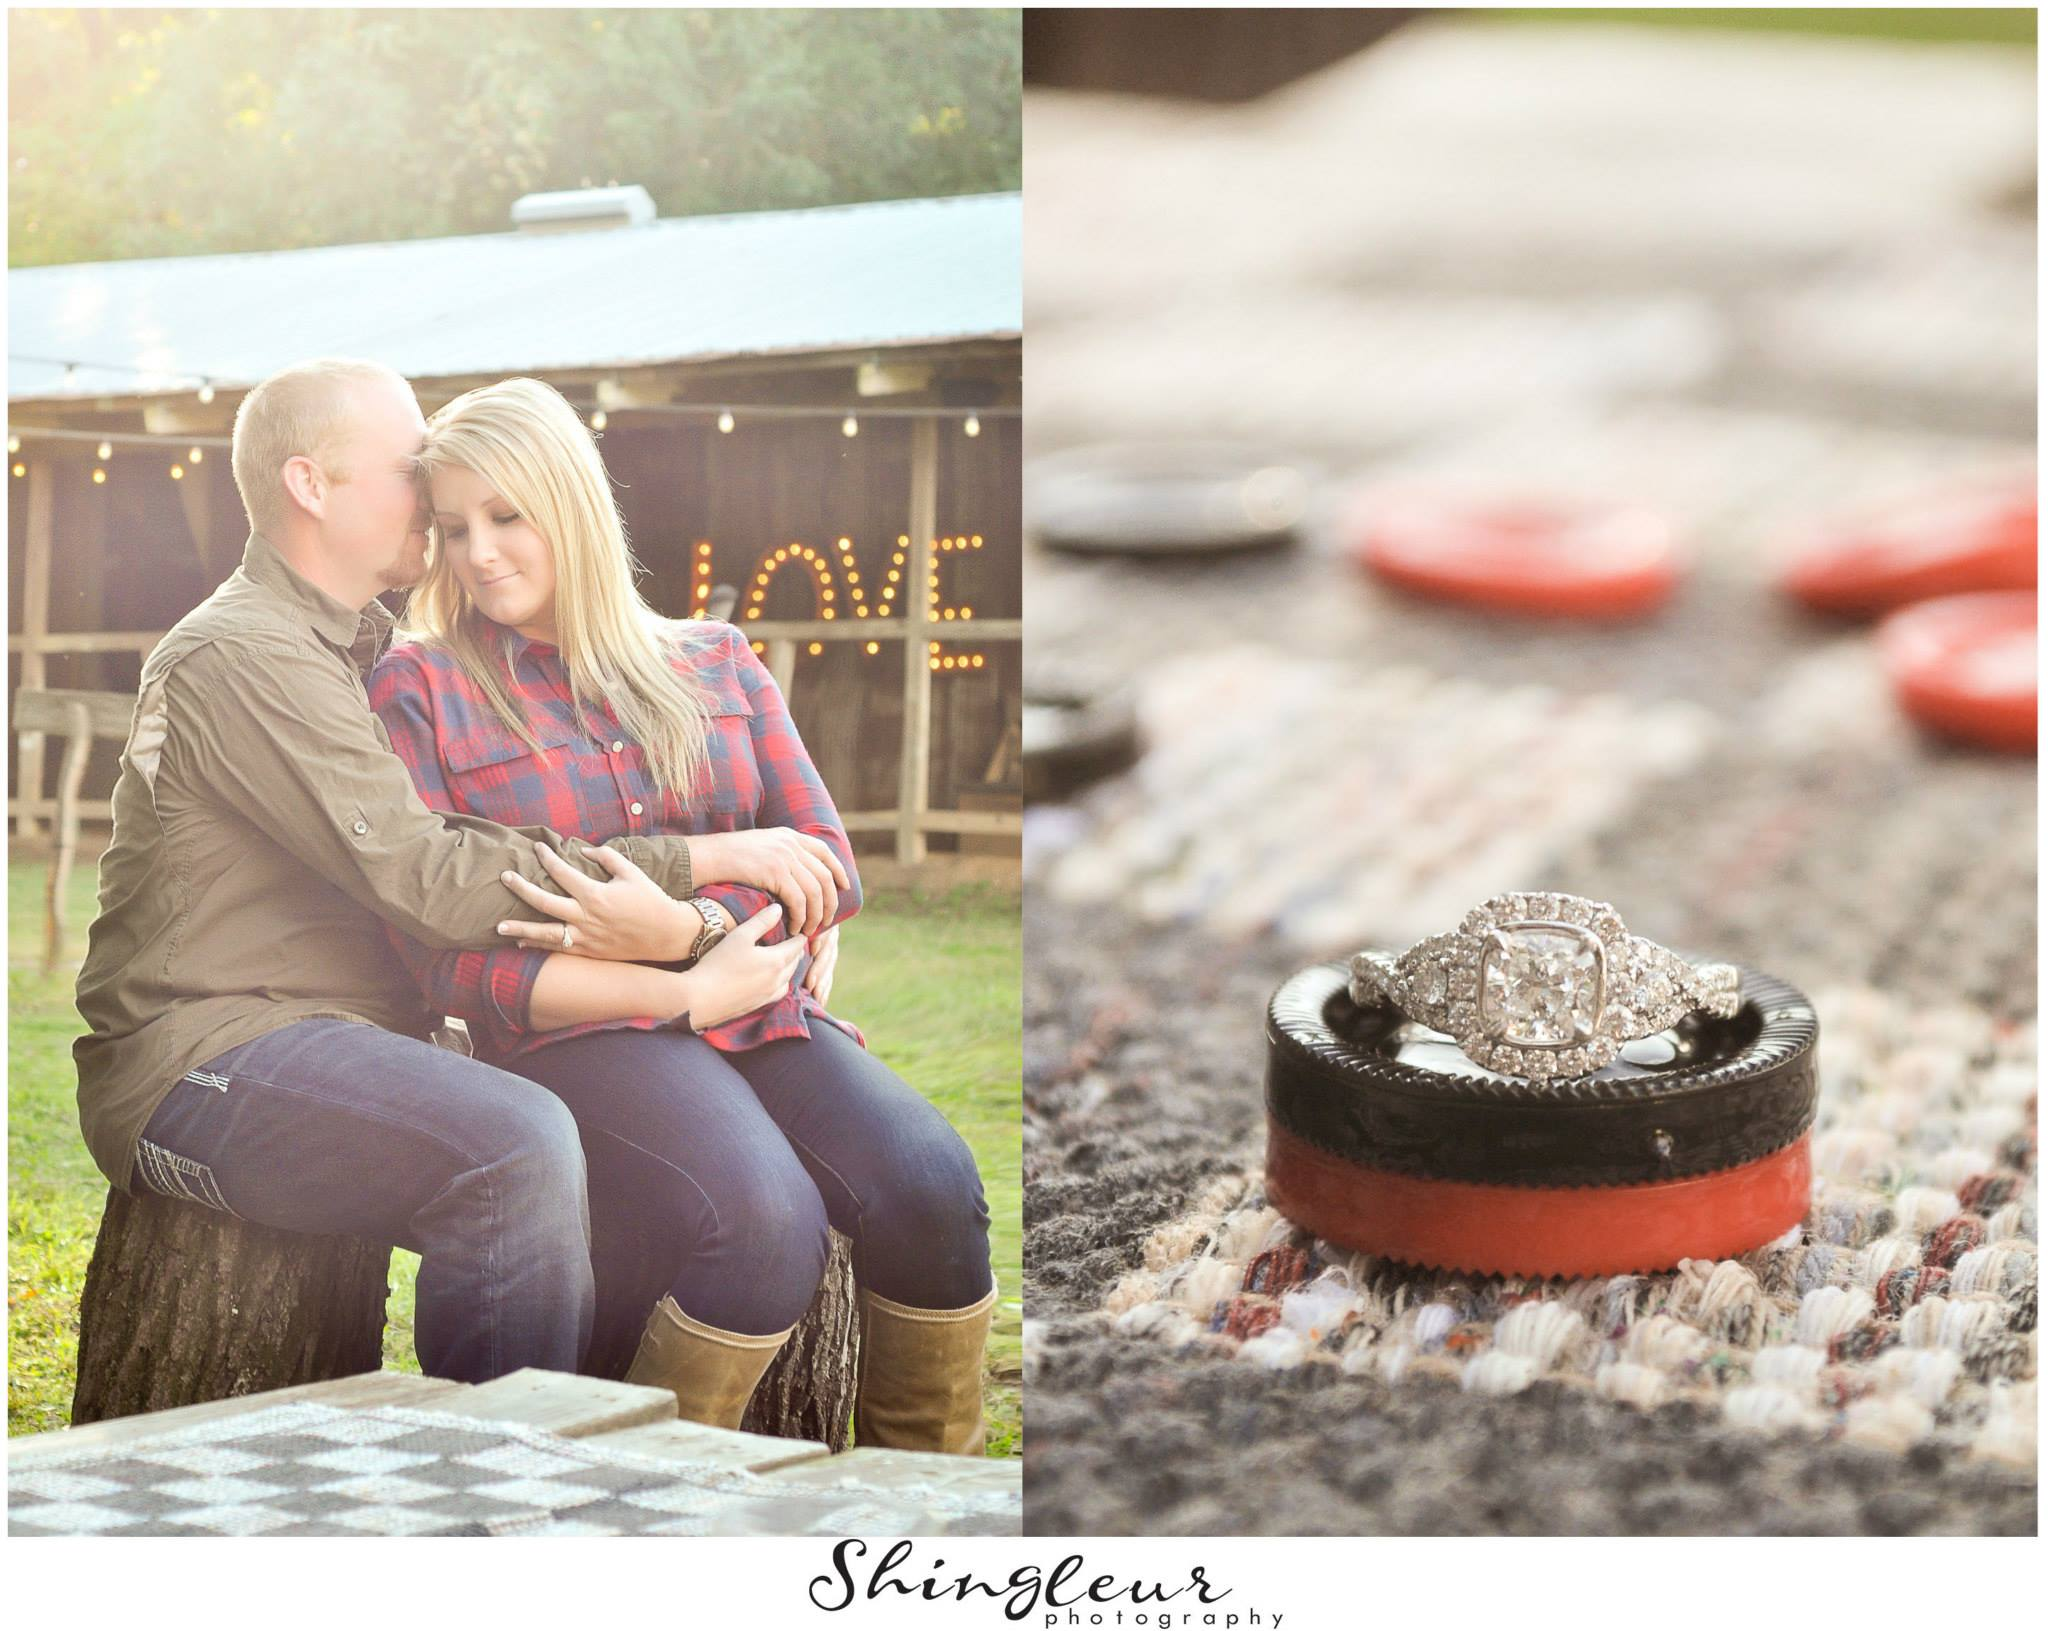 From  Misti + Robert 's precious engagement session.